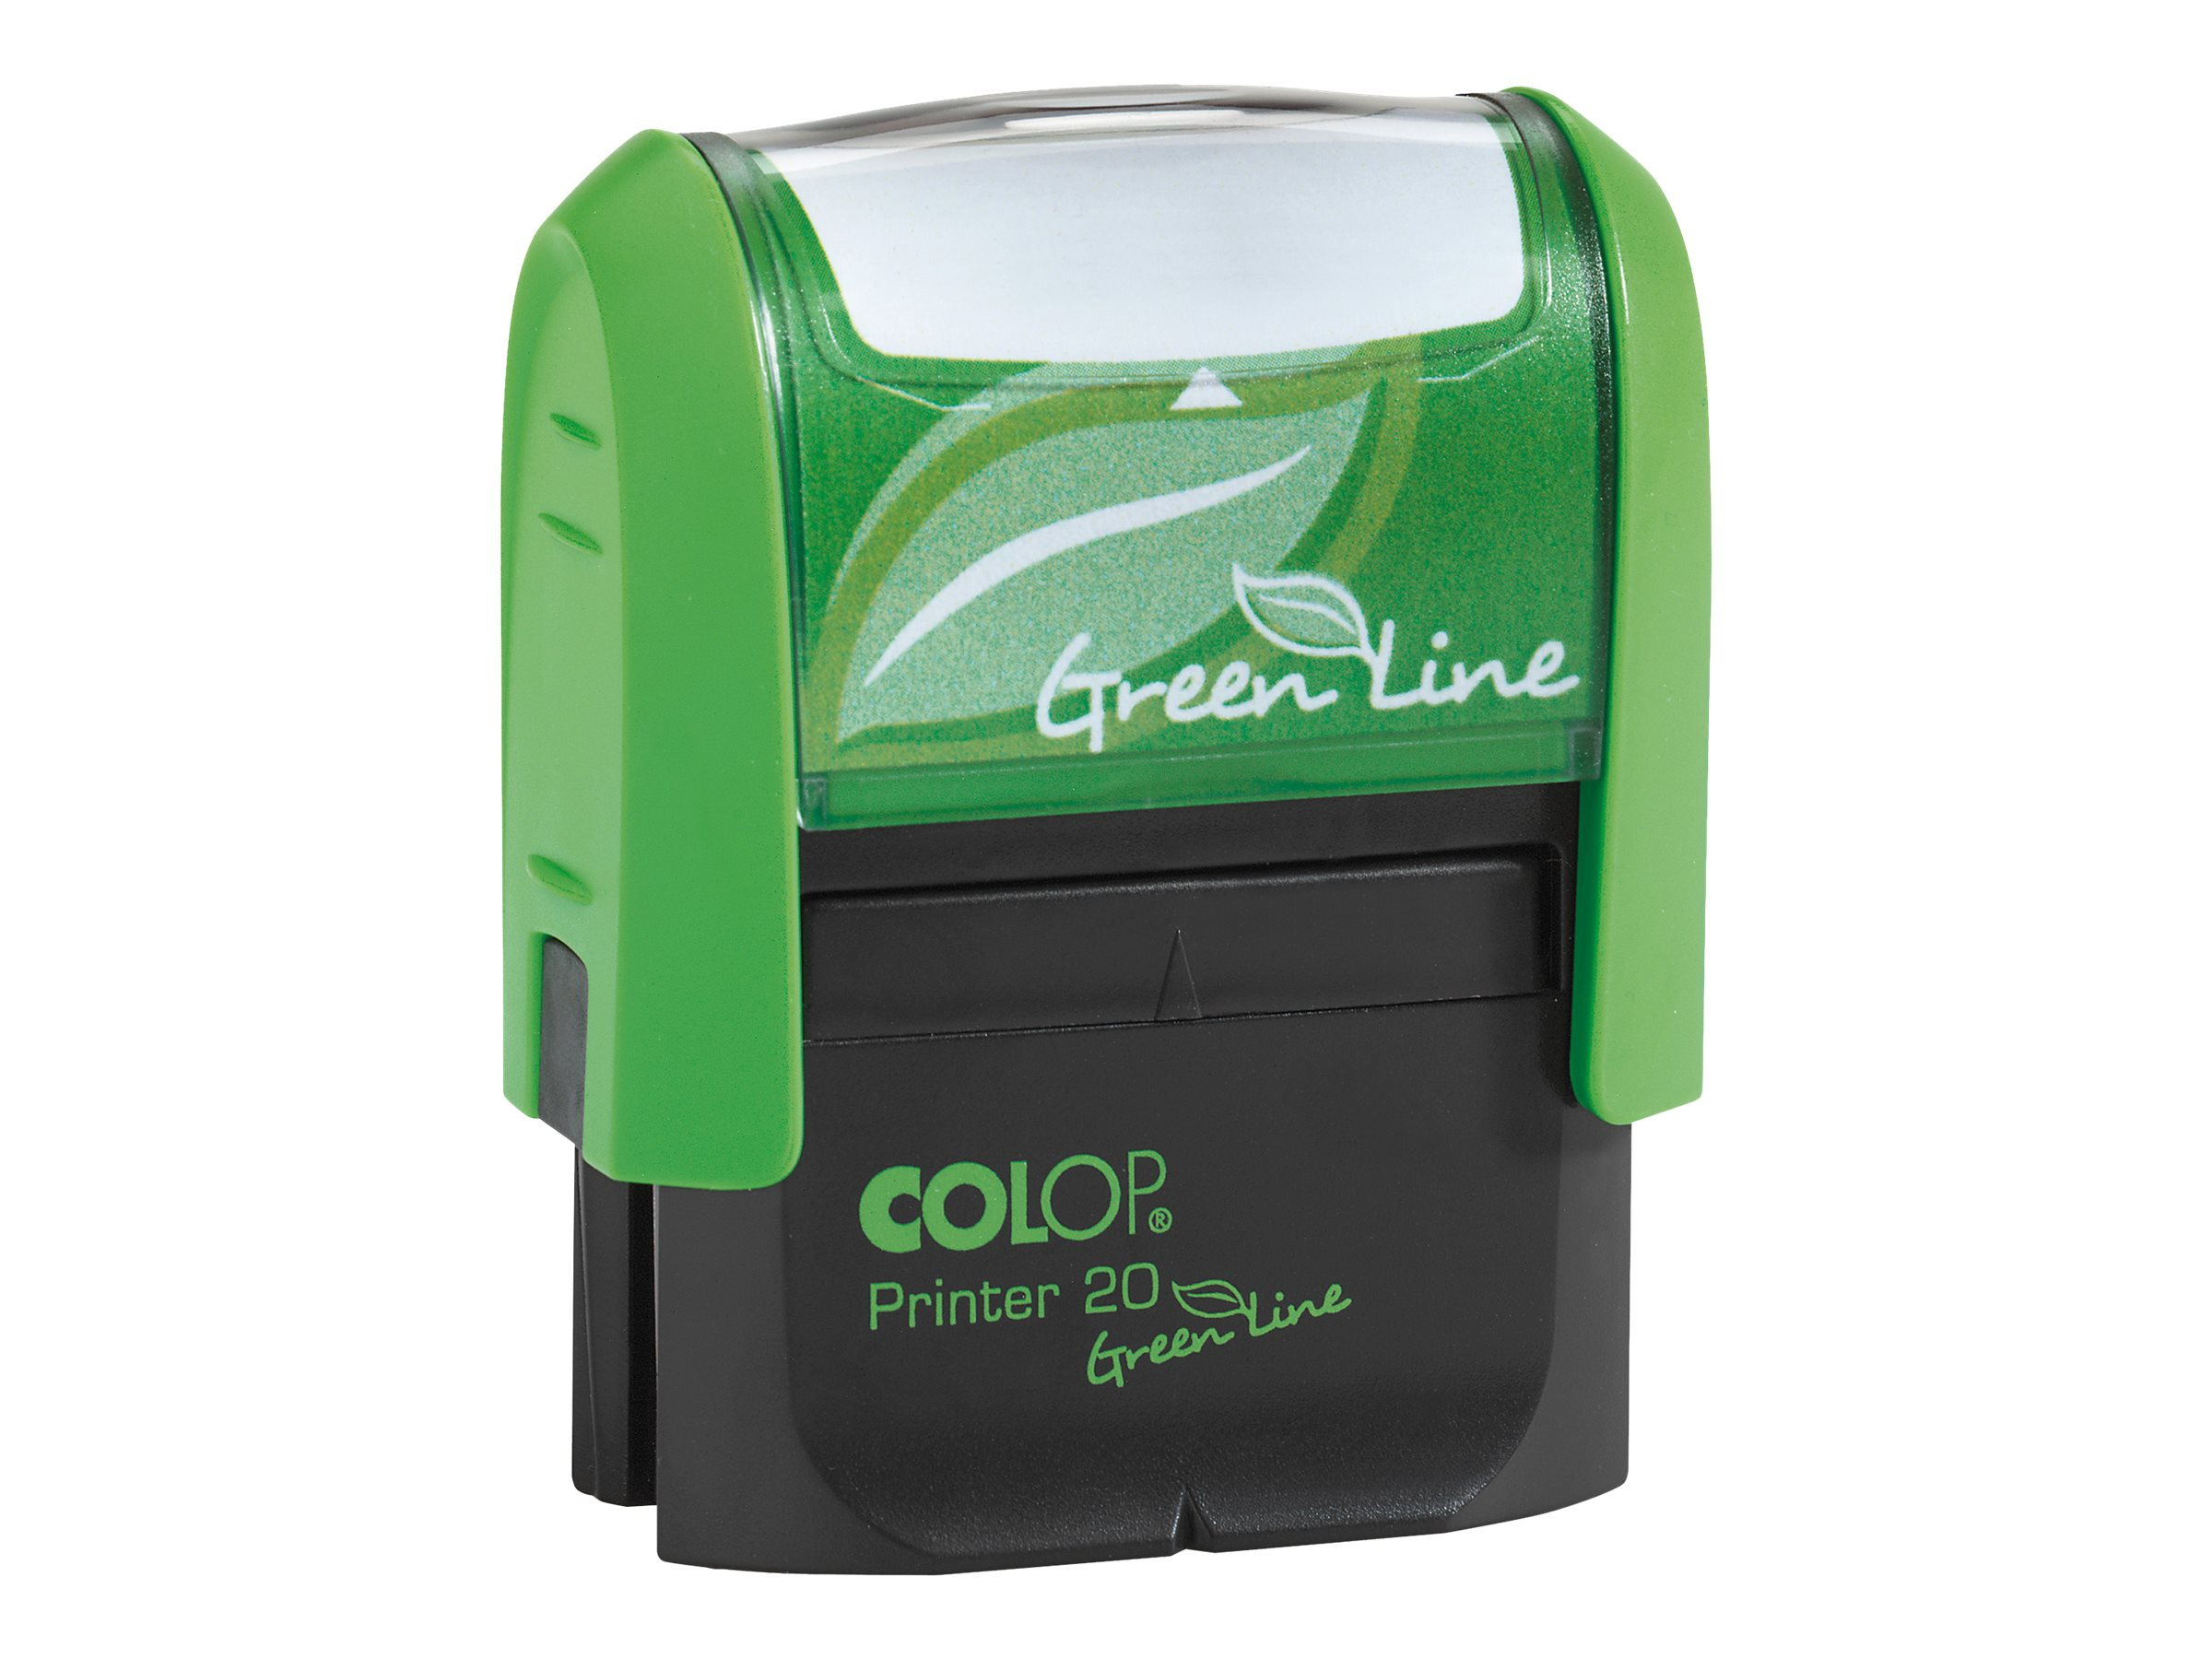 COLOP Printer 20 Green Line - tampon - COMPTABILISE